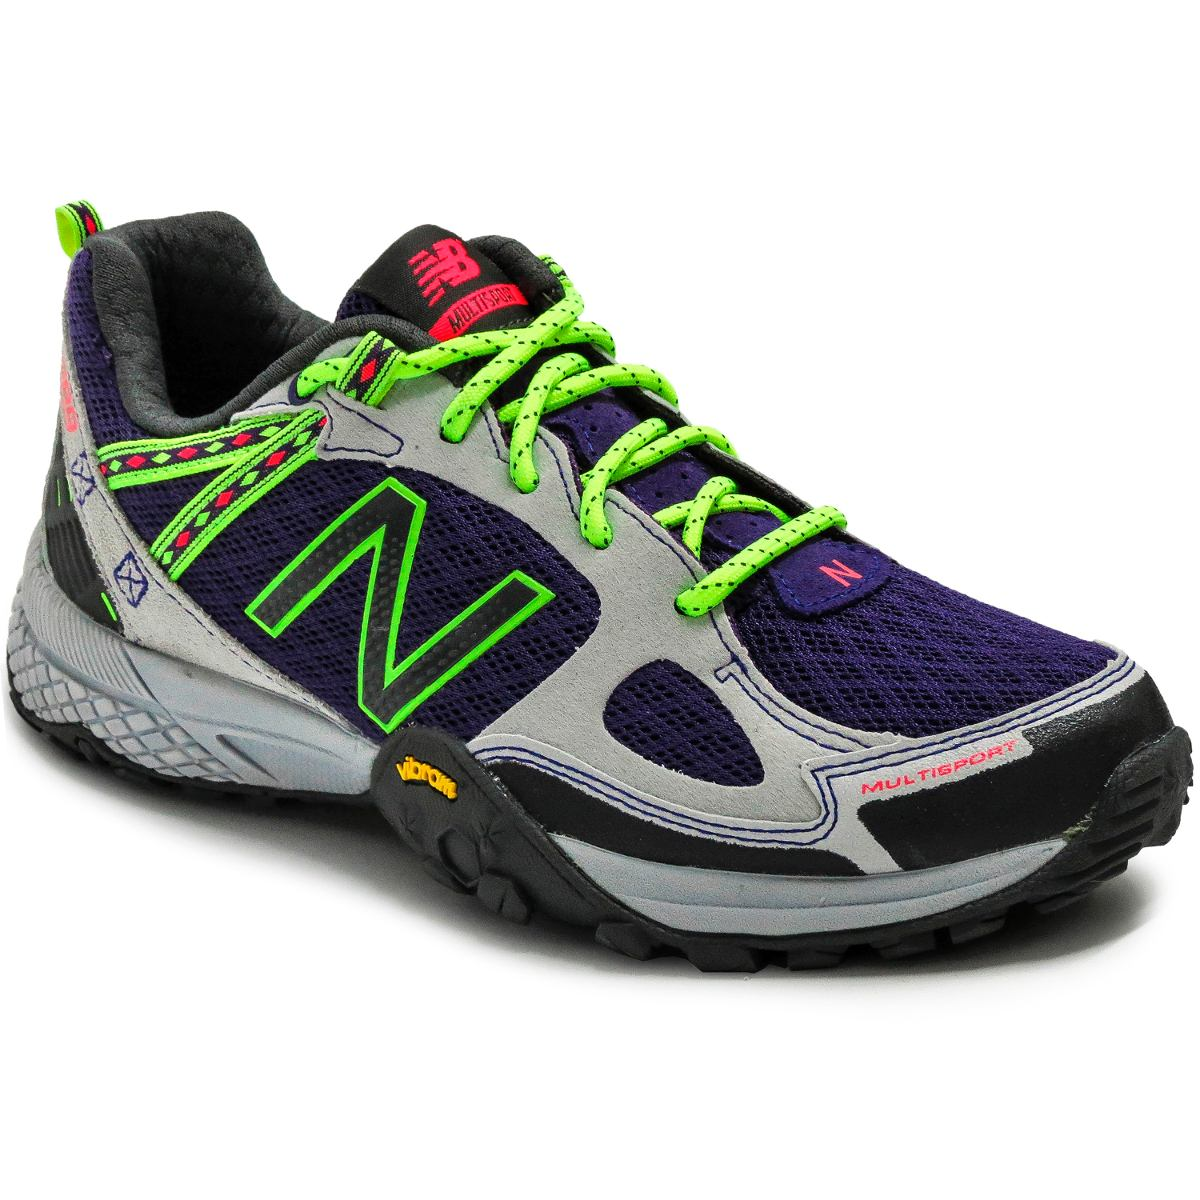 Zapatillas - New Balance Zapatillas New Balance Outdoor Wo889gy Mujer